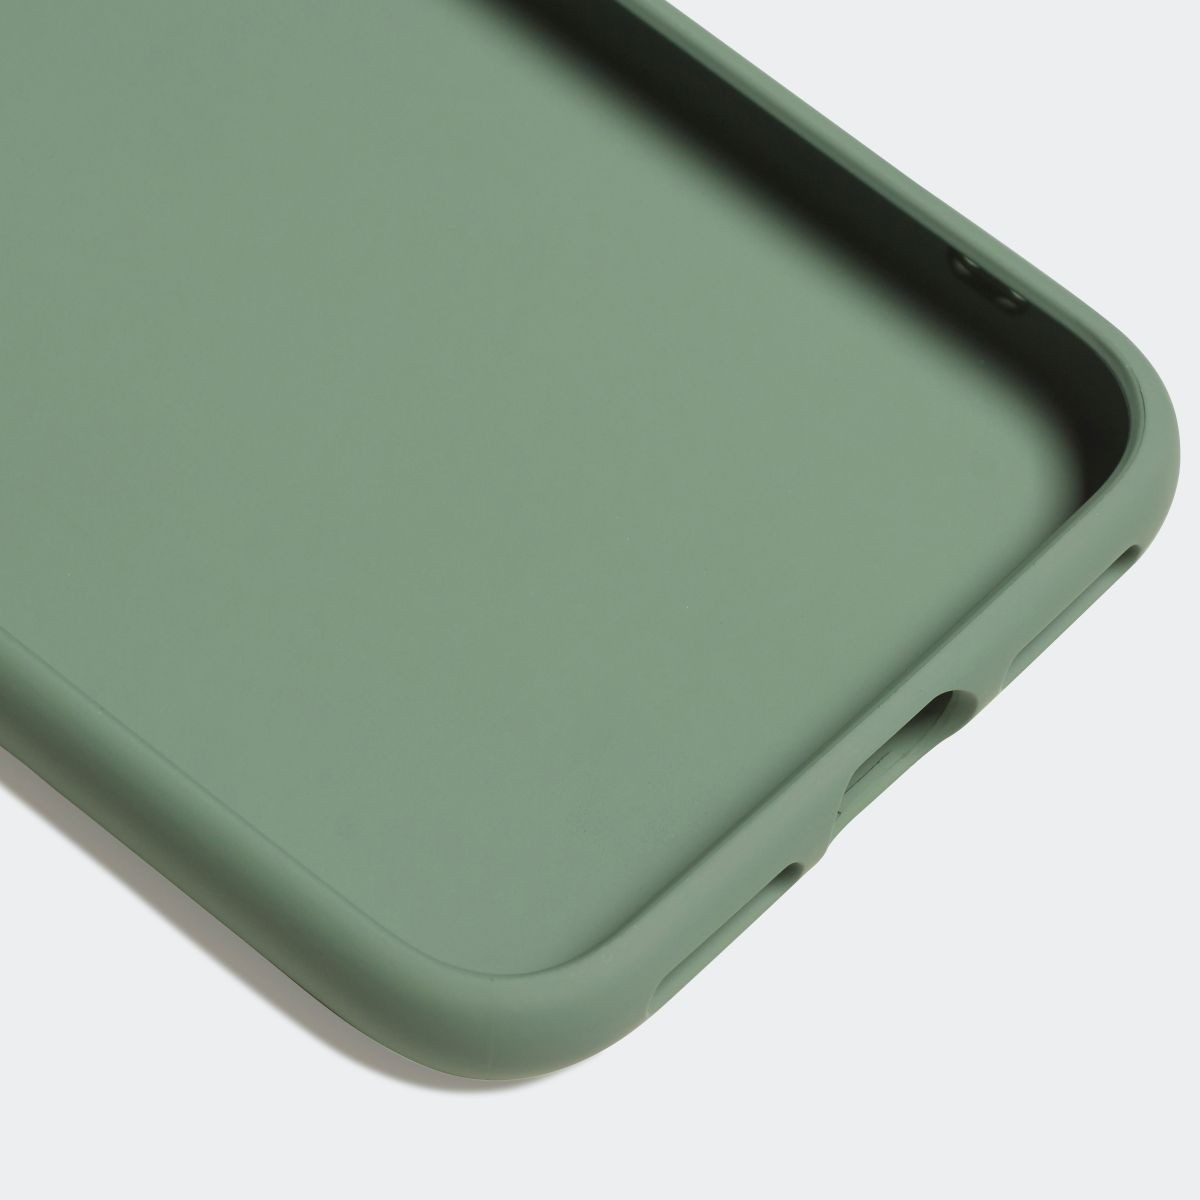 iPhone X用 adicolor Moulded Case Trace Green 31636の商品画像|4